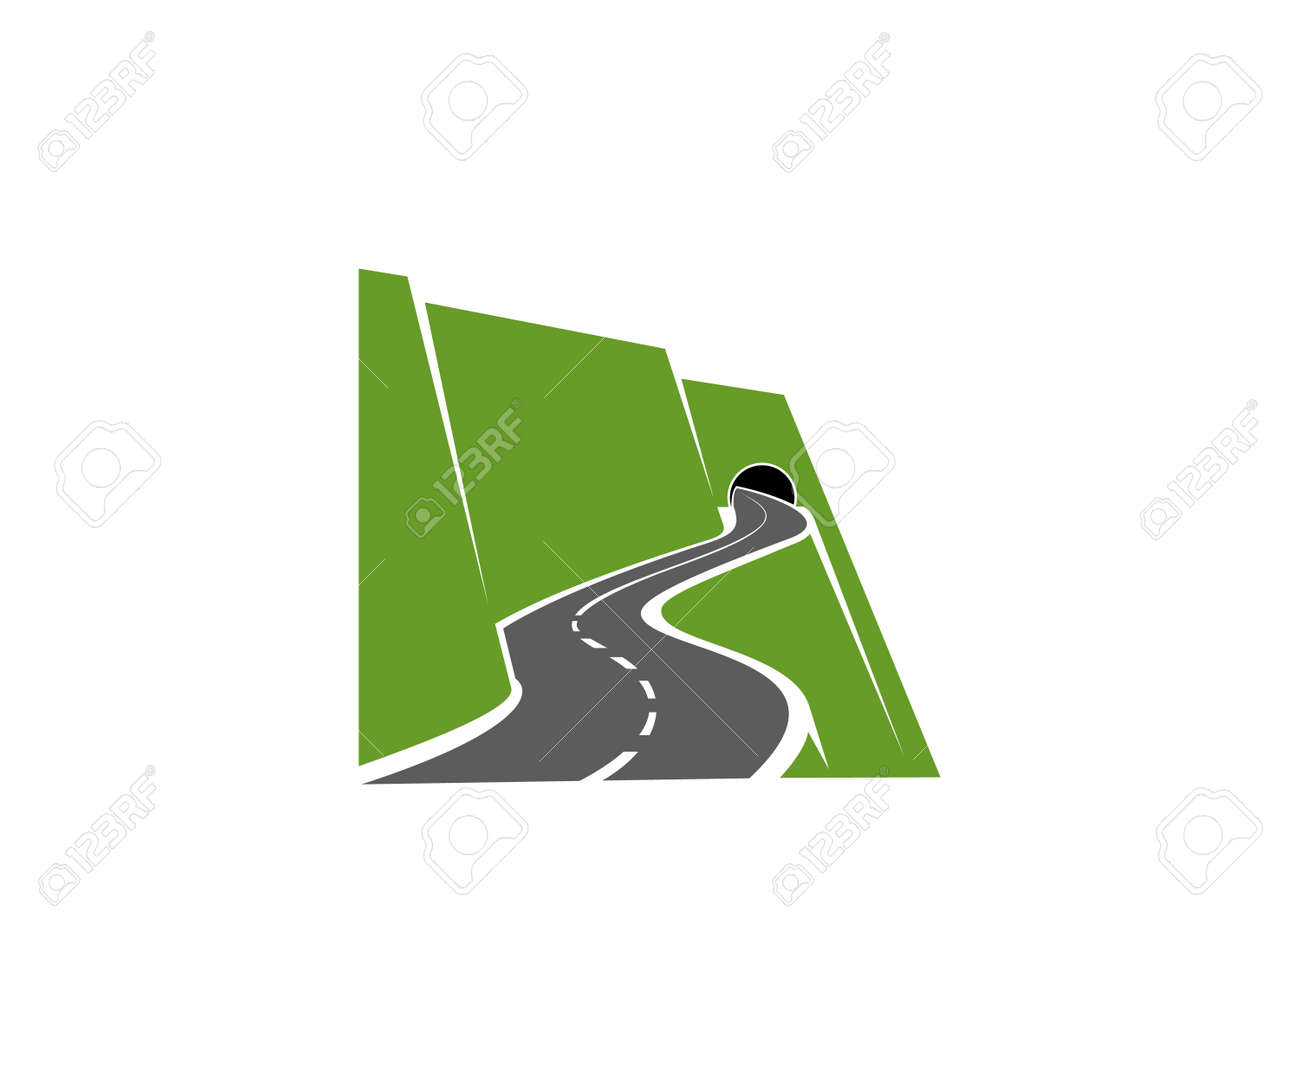 Winding mountain road or highway with tunnel in cliff icon. Speed freeway, driveway or pathway on sidehill or steep mountainside going in tunnel vector. Road travel voyage, transportation emblem - 160017589